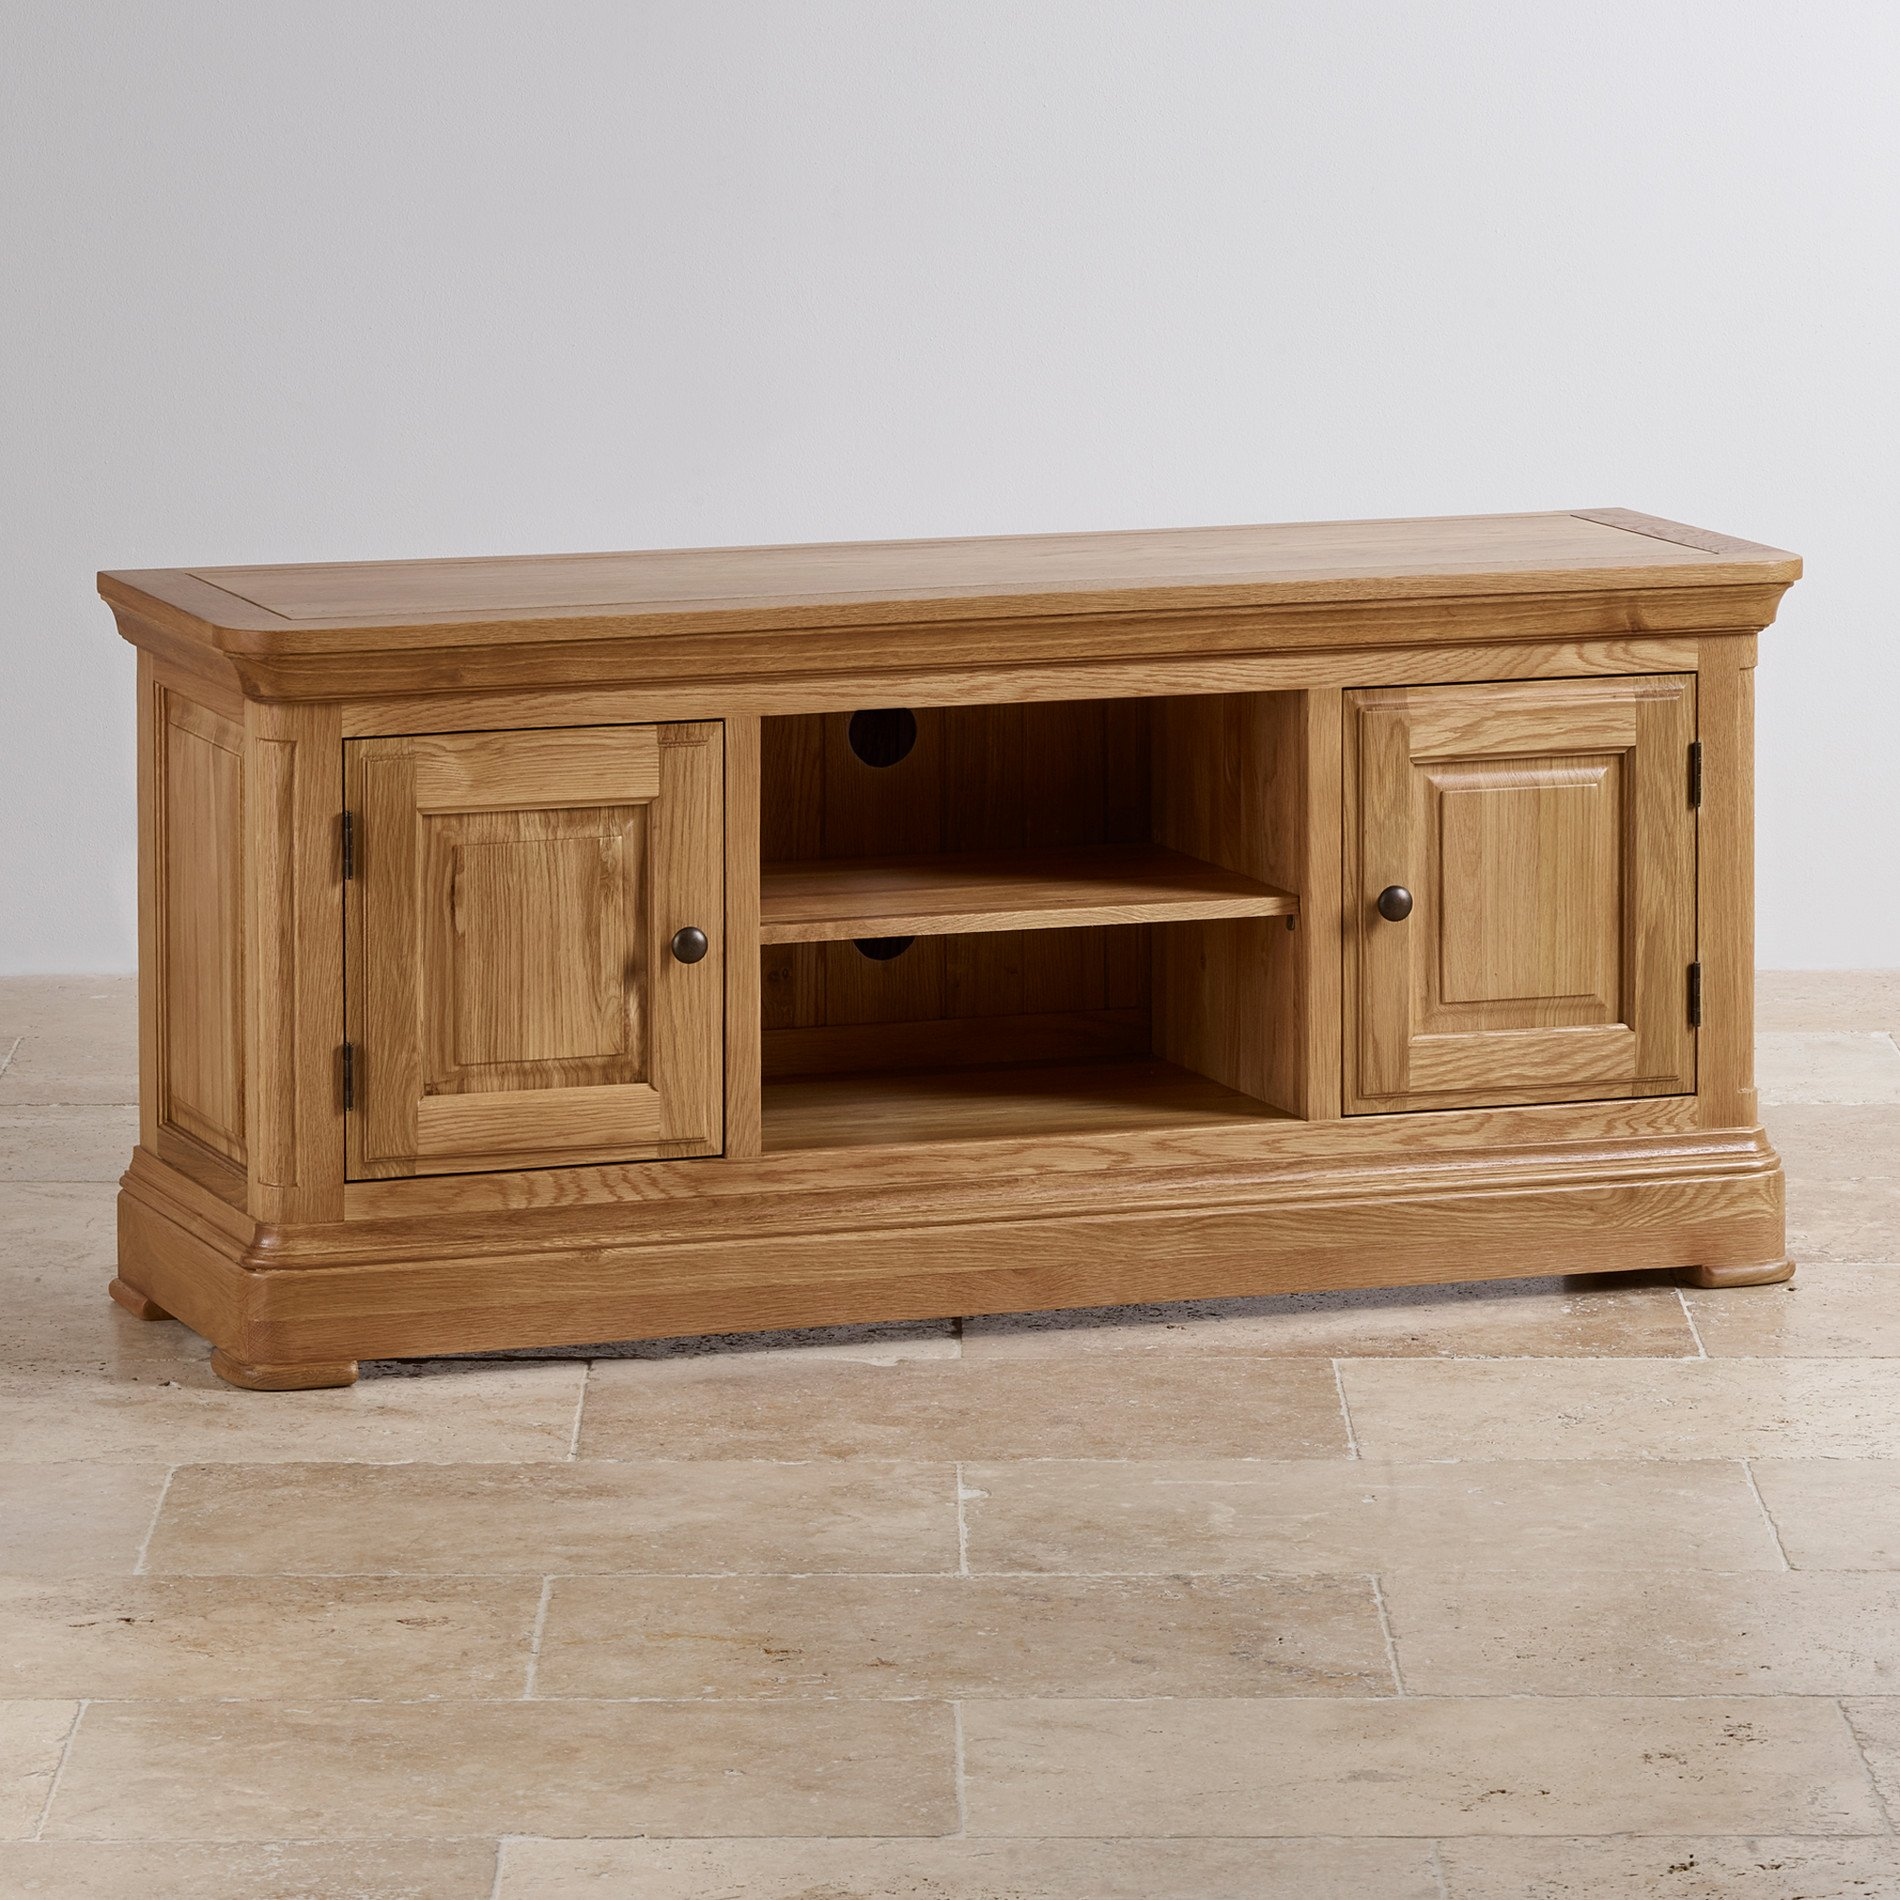 Tv cabinets units 100 solid oak oak furniture land canterbury natural solid oak large tv cabinet geotapseo Image collections